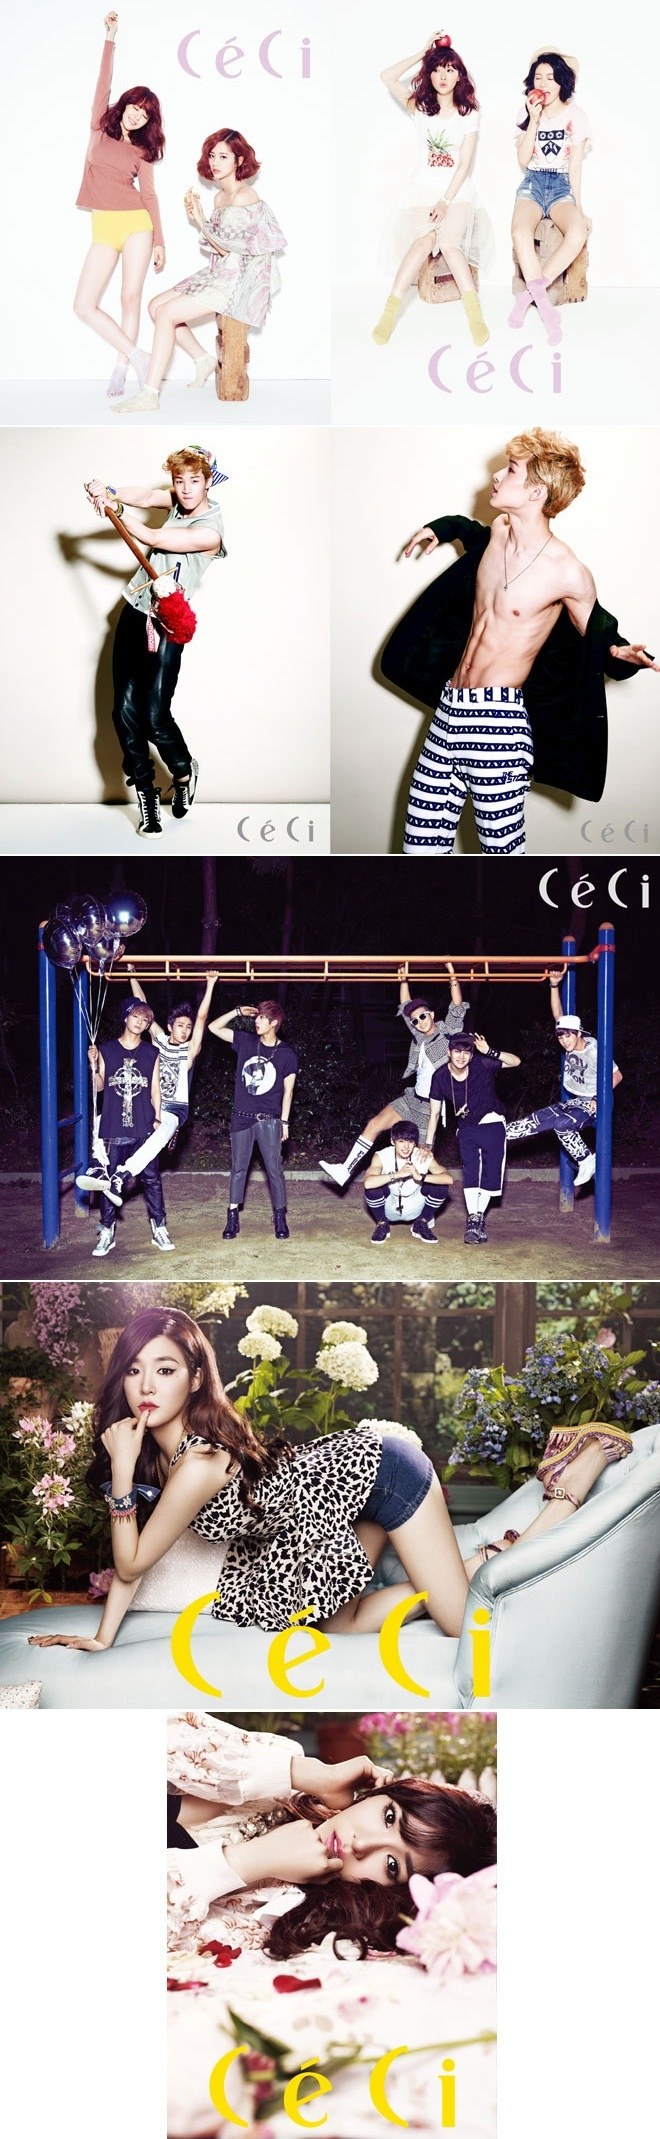 Ceci August 2013